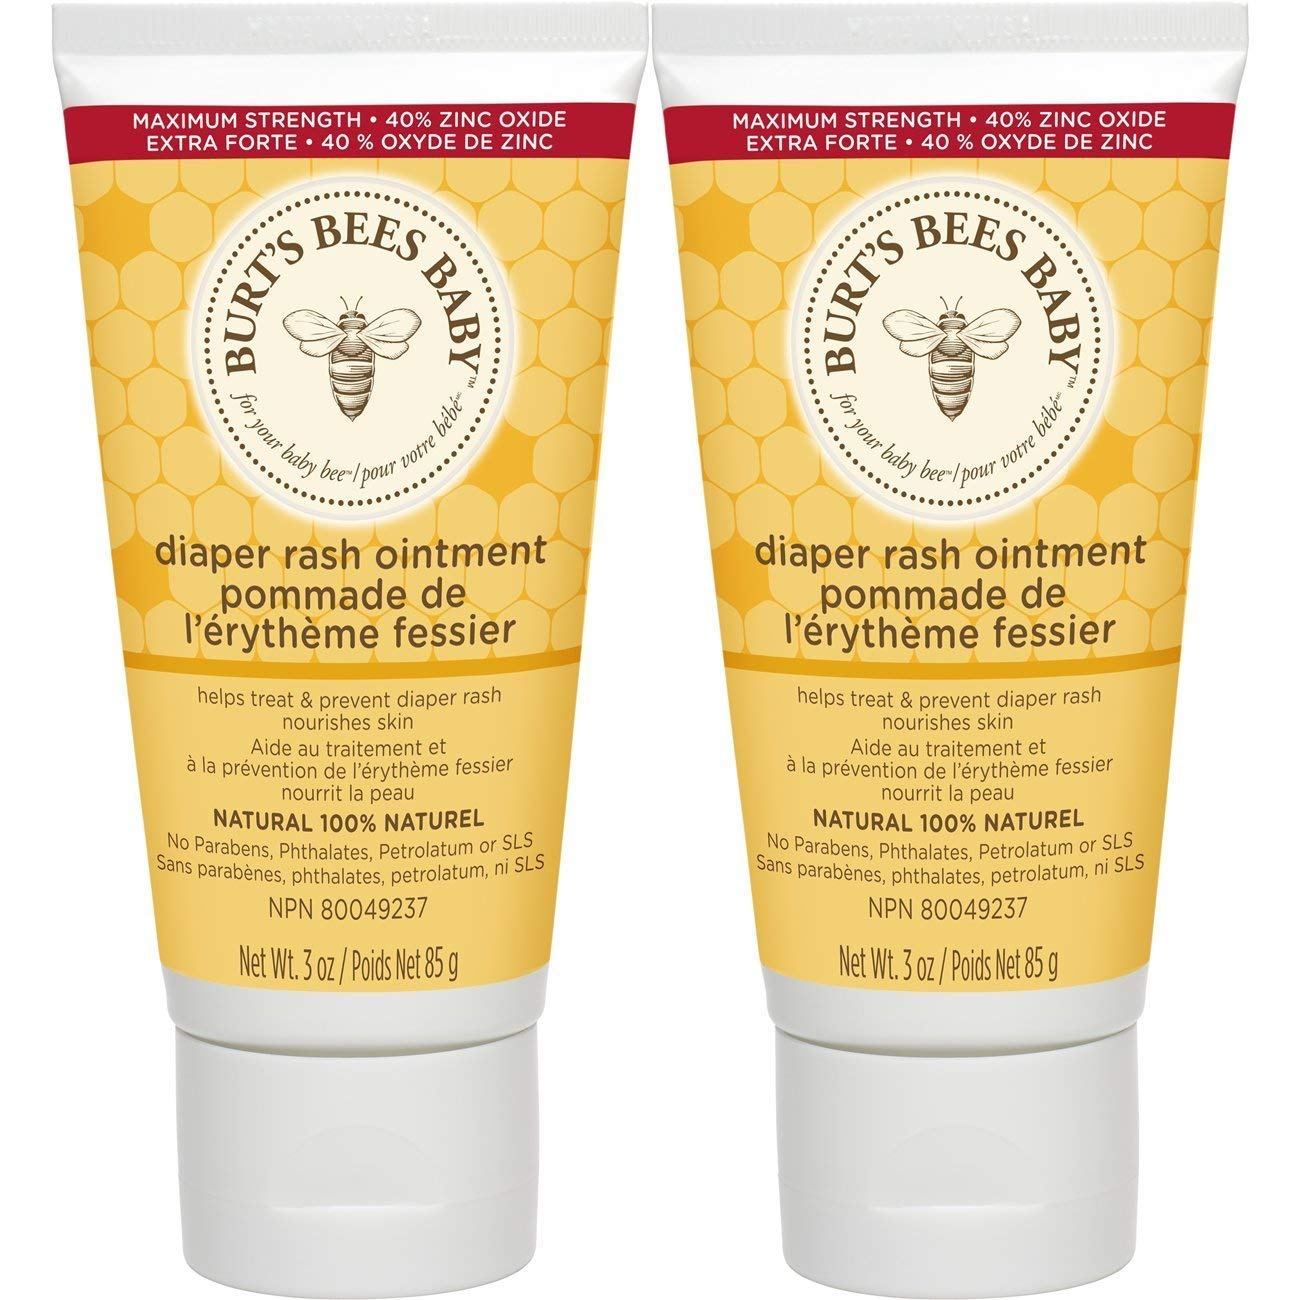 Burt's Bees baby bee 100% natural diaper rash ointment, 3 ounces (pack of 3), 9 Ounce by Burt's Bees Baby